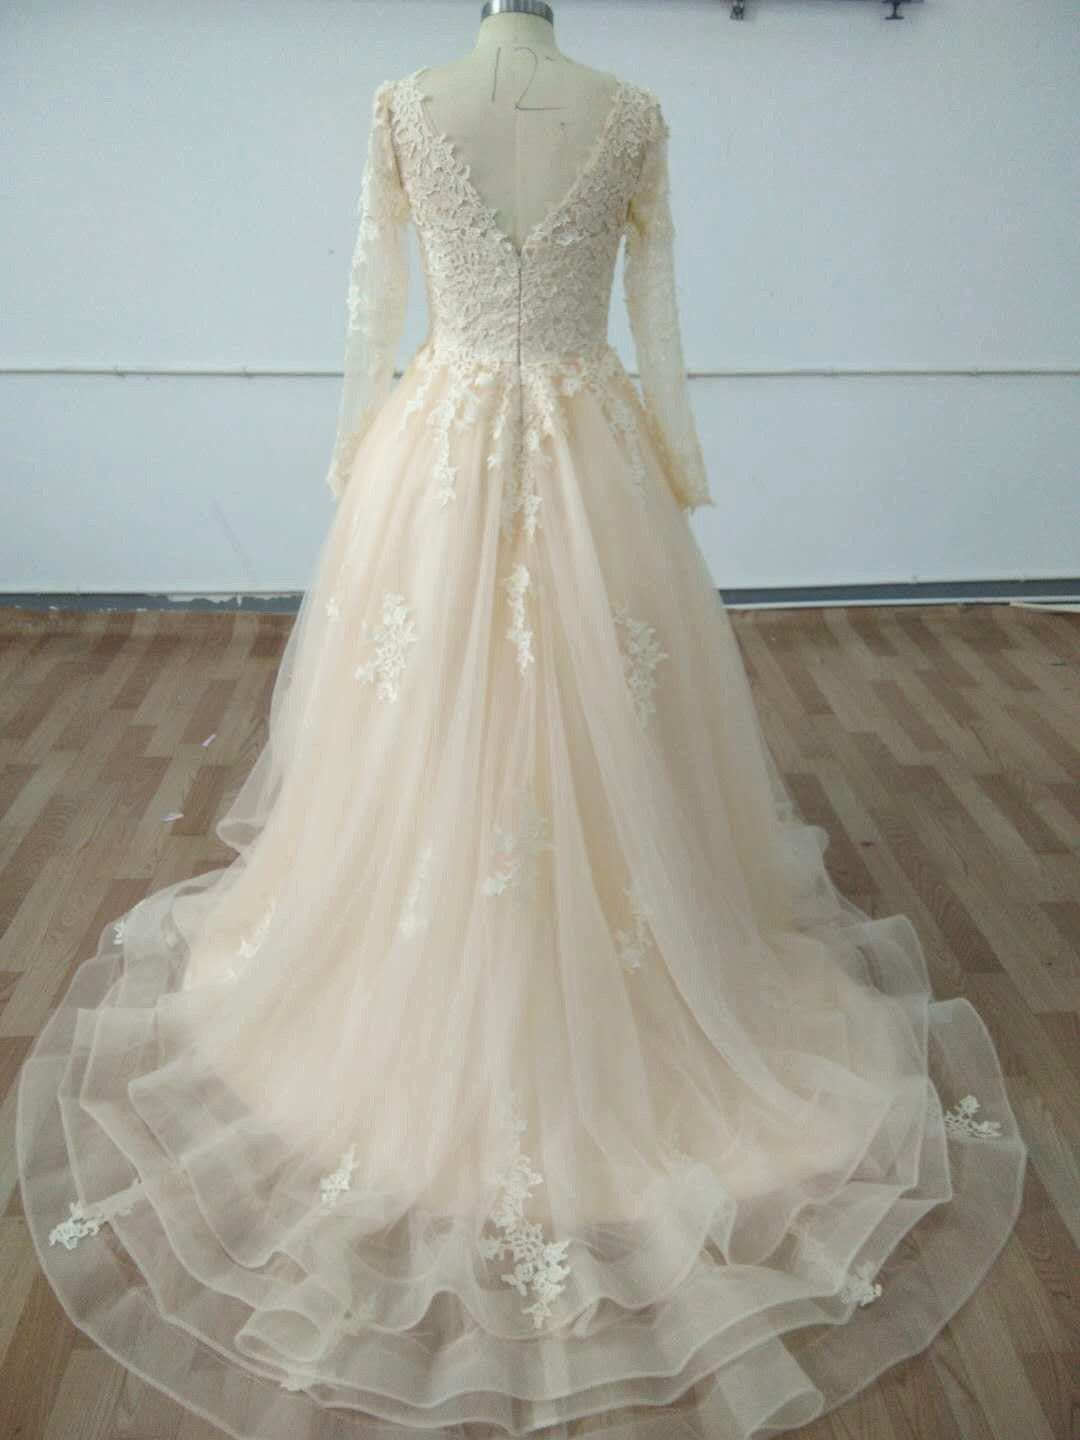 Custom Made V Neck Long Sleeves Champagne Wedding Dresses, Champagne Wedding Gowns, Long Sleeves High Low Prom Dresses